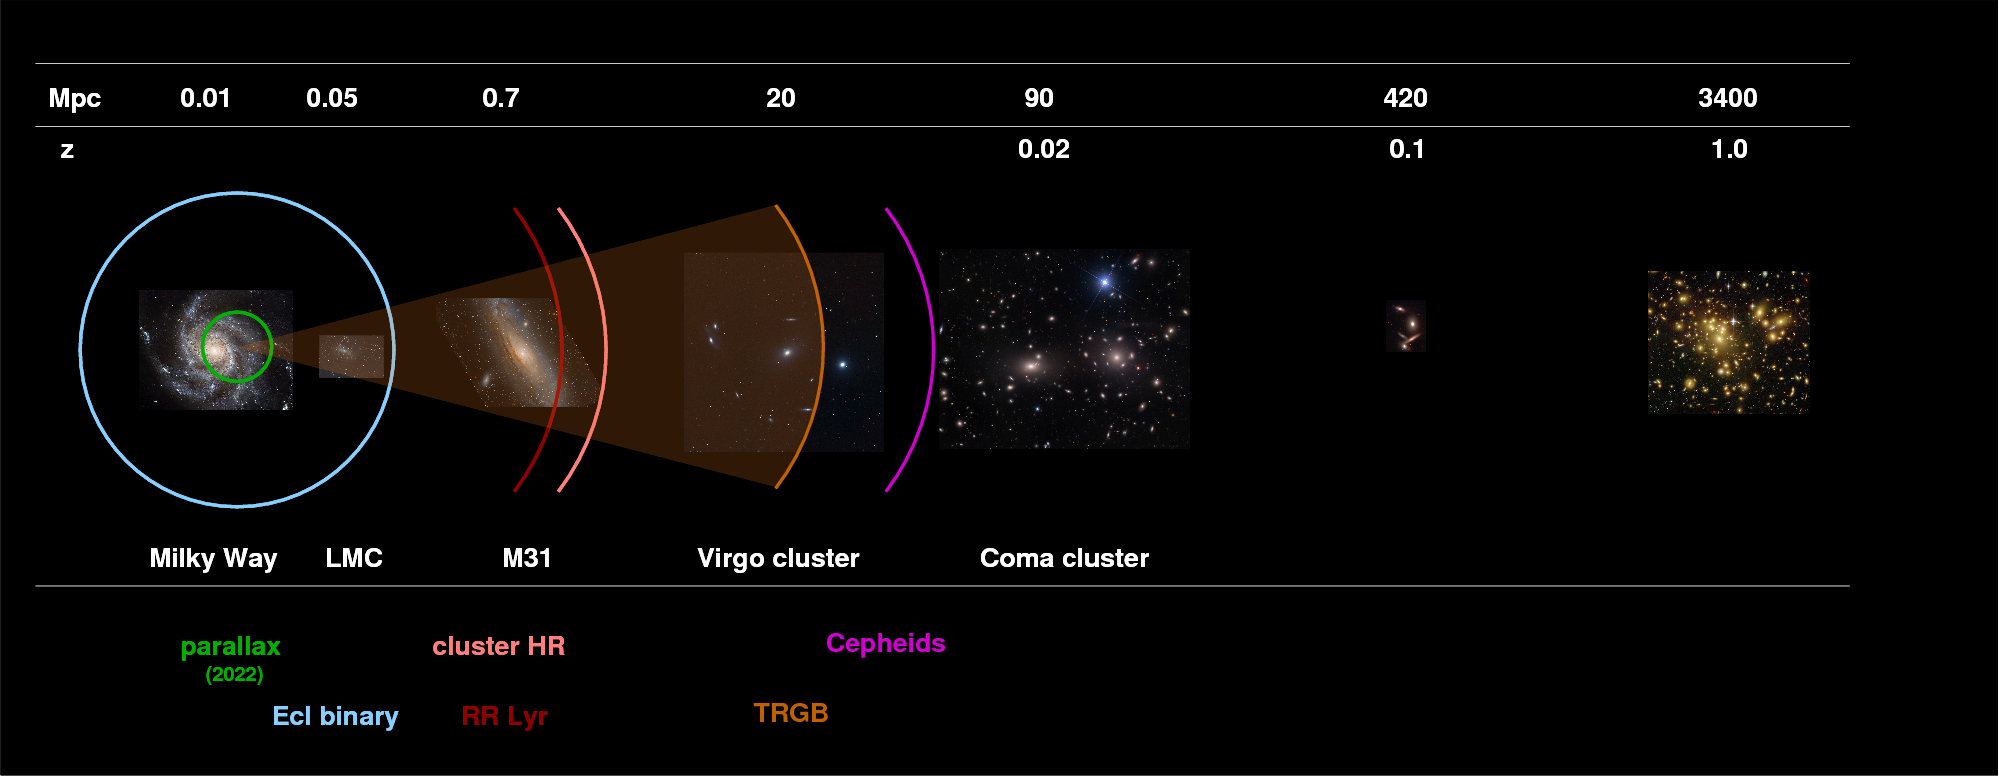 Nearby galaxies hr diagrams again sbf and globular clusters in the past few years we have managed to just barely reach the virgo cluster with trgb ccuart Choice Image